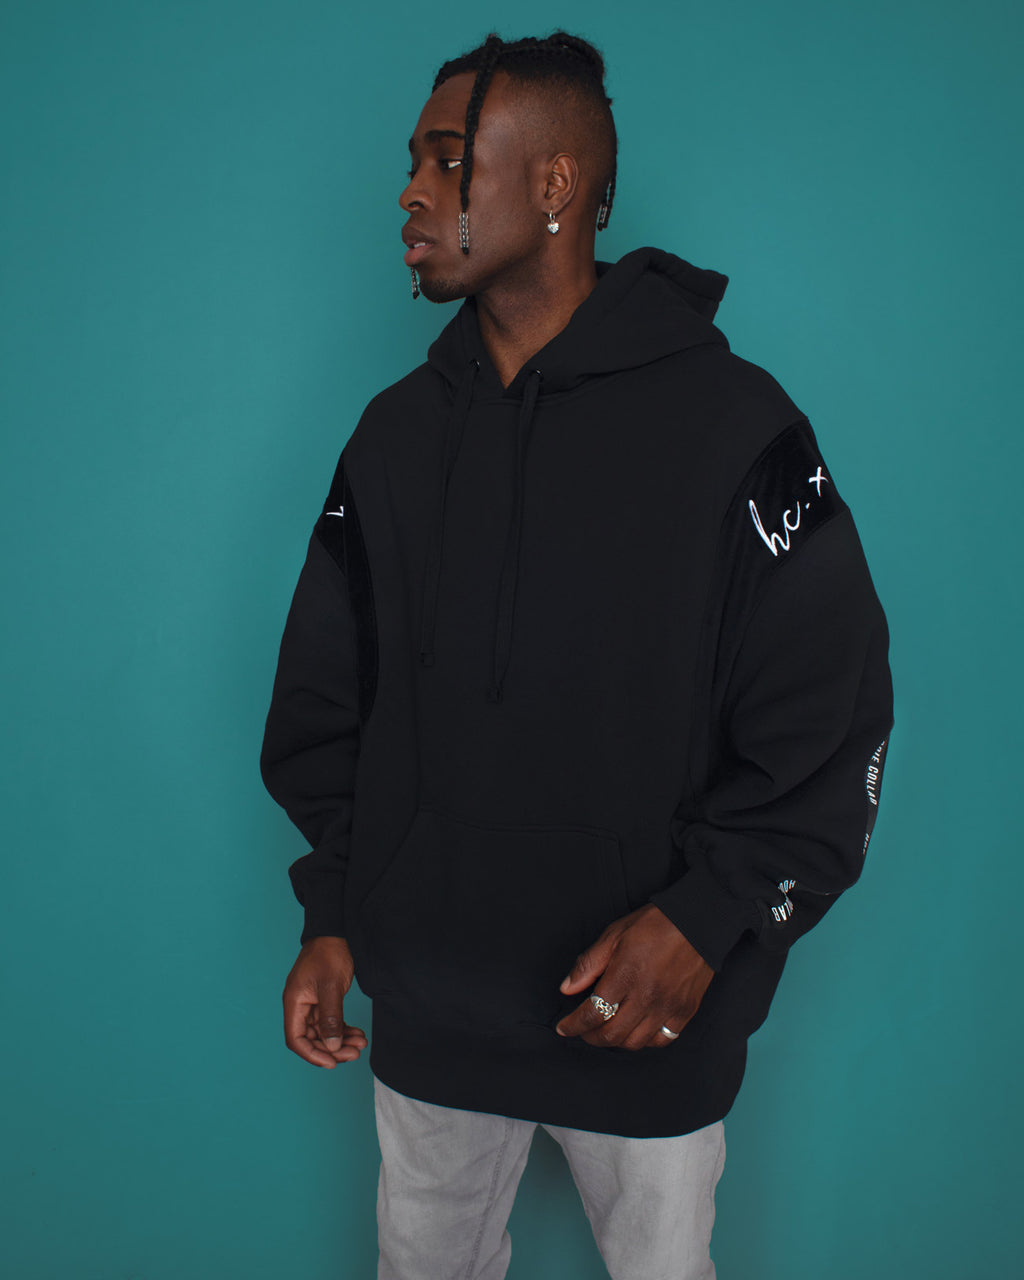 Super Oversized Hoodie - HoodieCollab